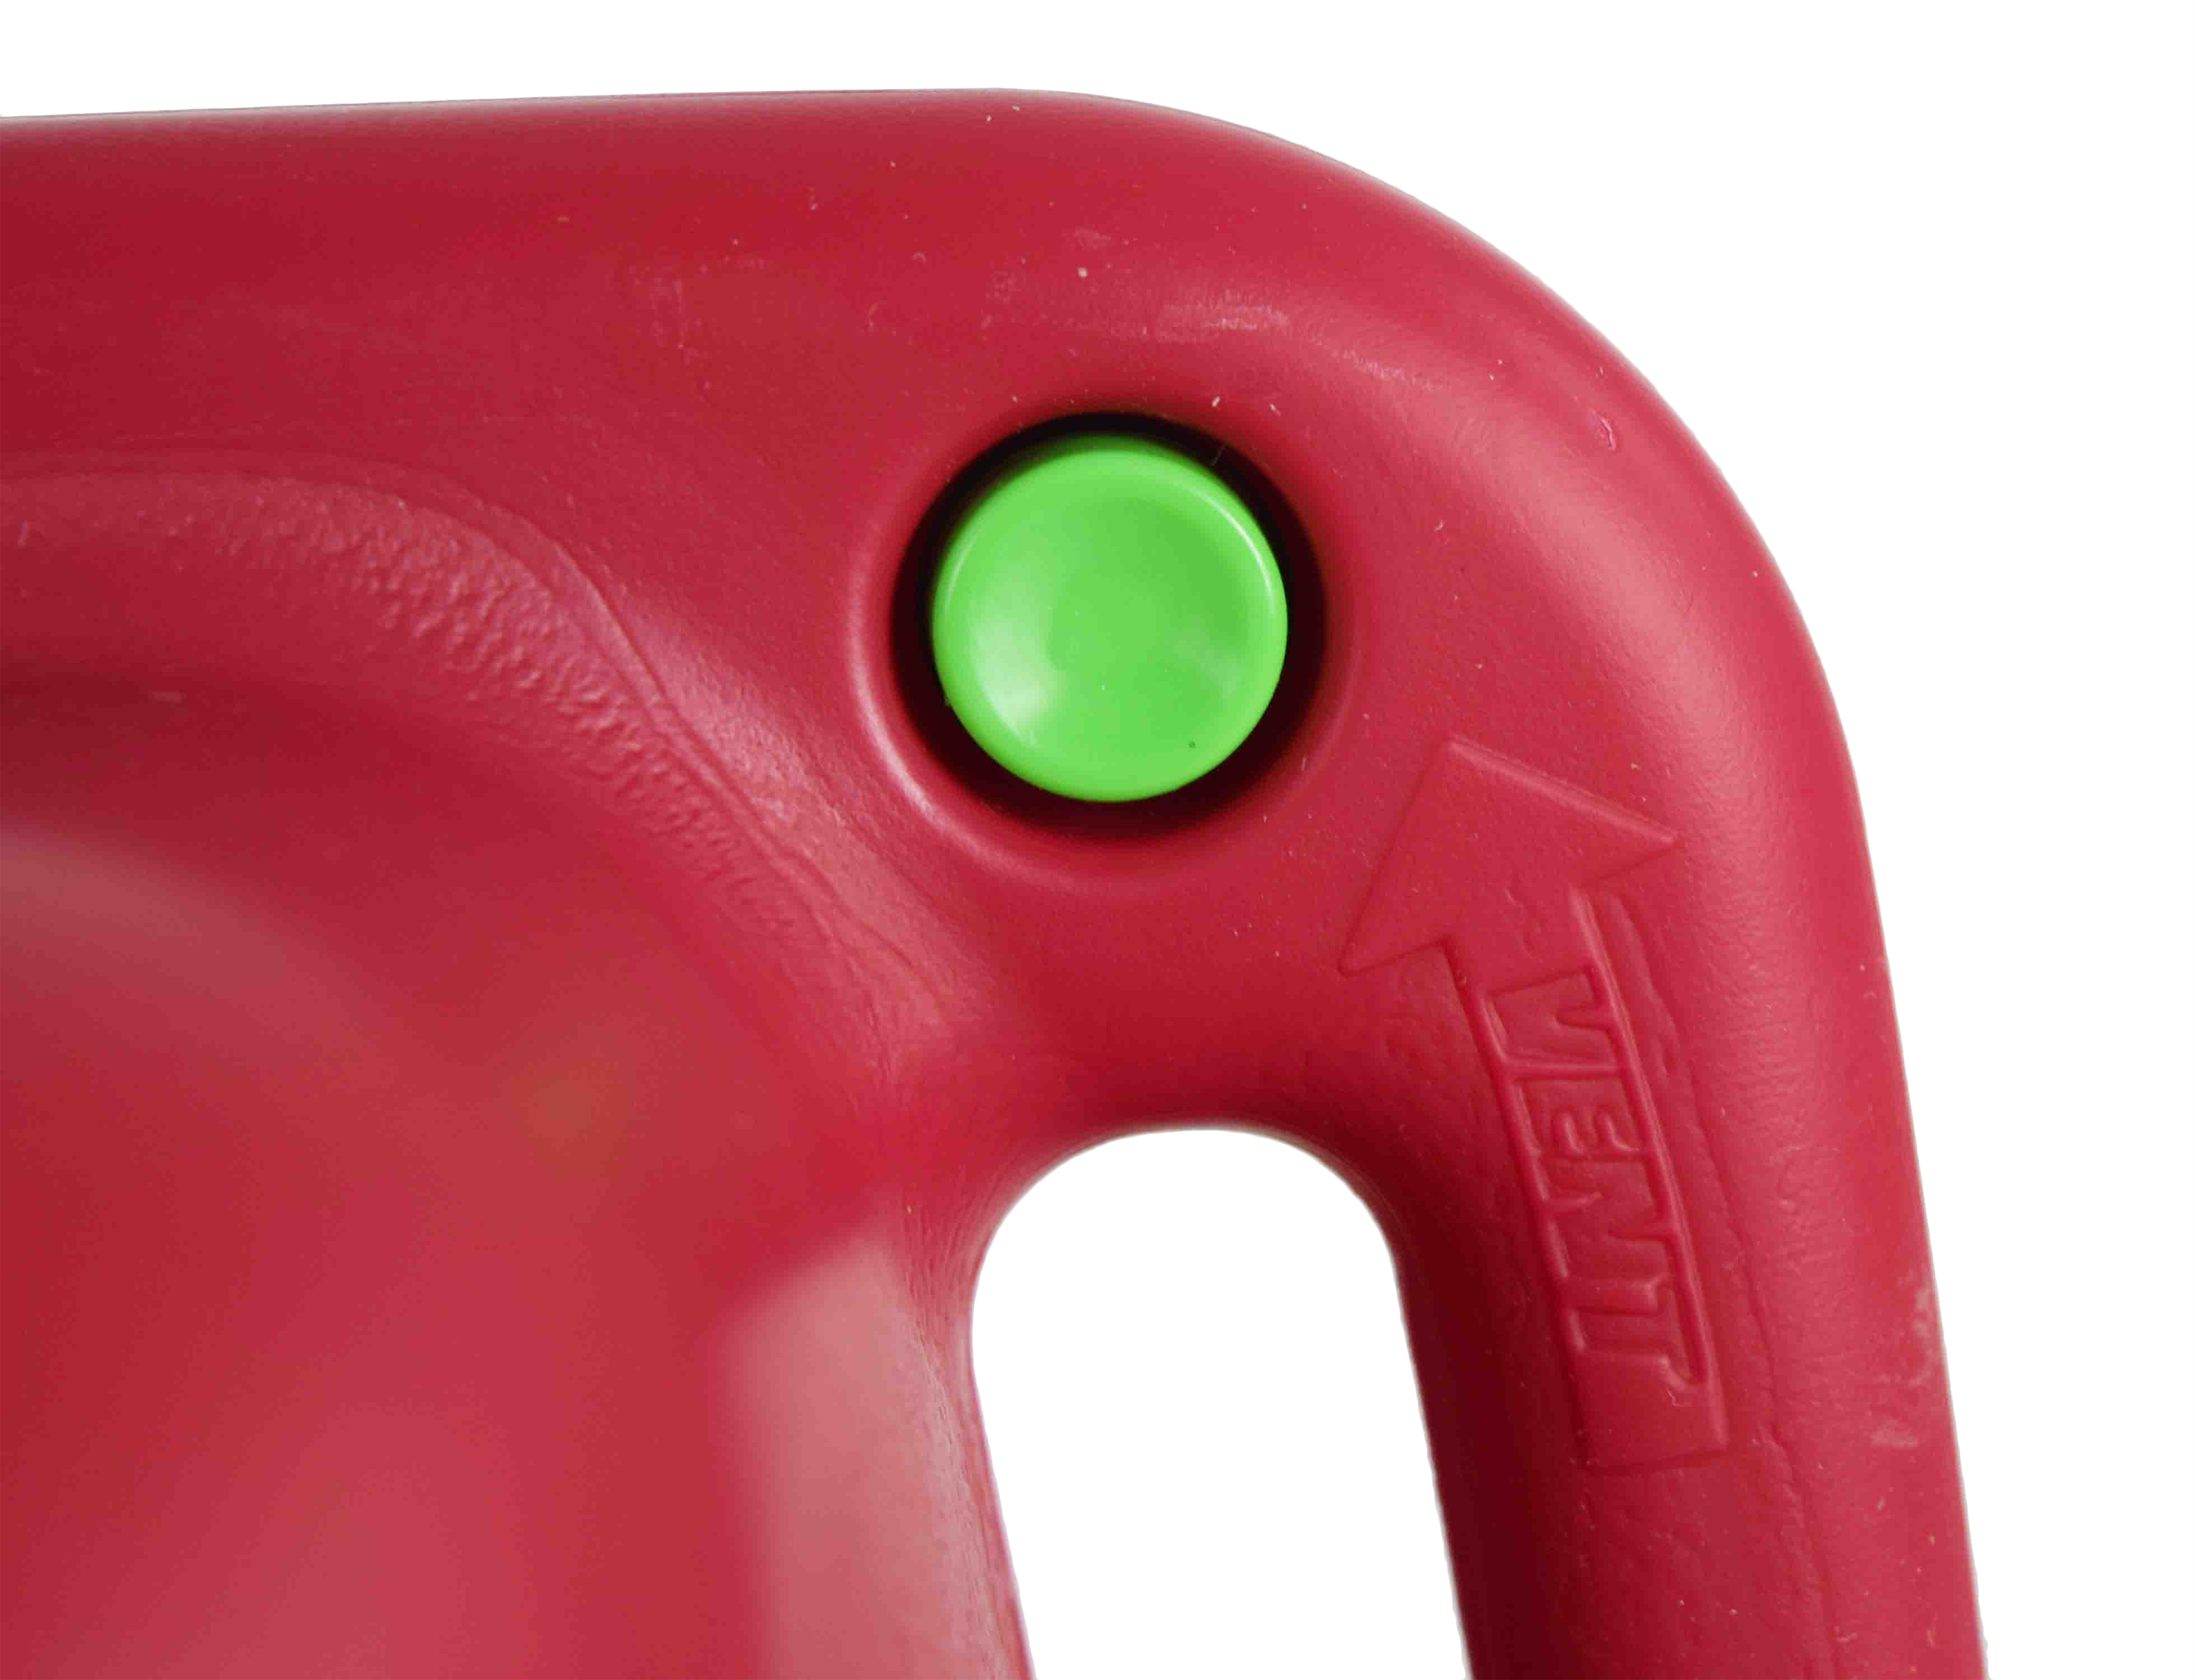 Fuelworx-Red-5-Gallon-Stackable-Fast-Pour-Gas-Fuel-Can-CARB-Compliant-Made-in-The-USA-5-Gallon-Gas-Can-2-Pack-image-7